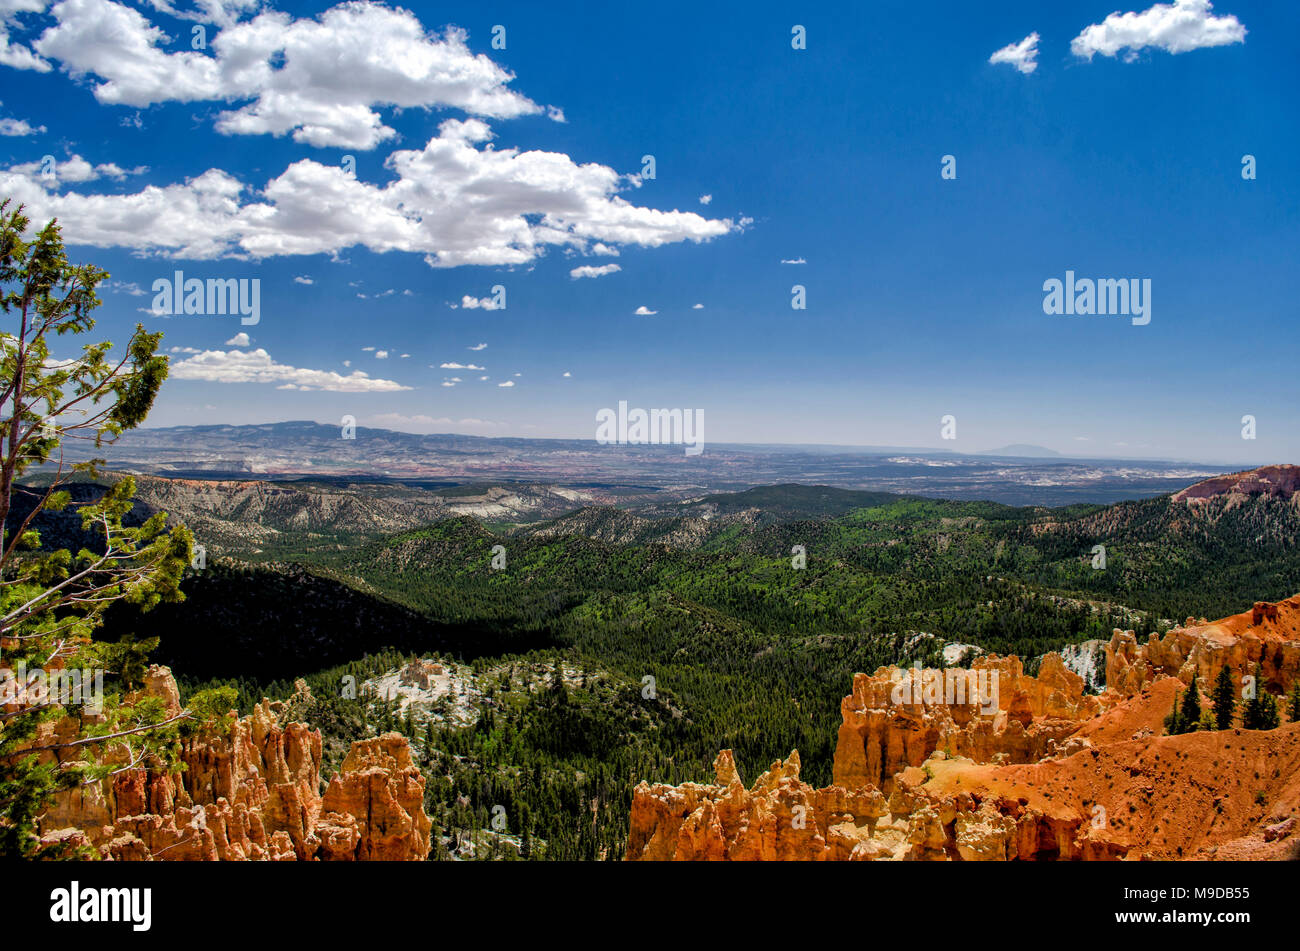 Scenic overlook of orange sandstone rock formations and cliffs with a green valley below under a blue sky with white fluffy clouds. - Stock Image